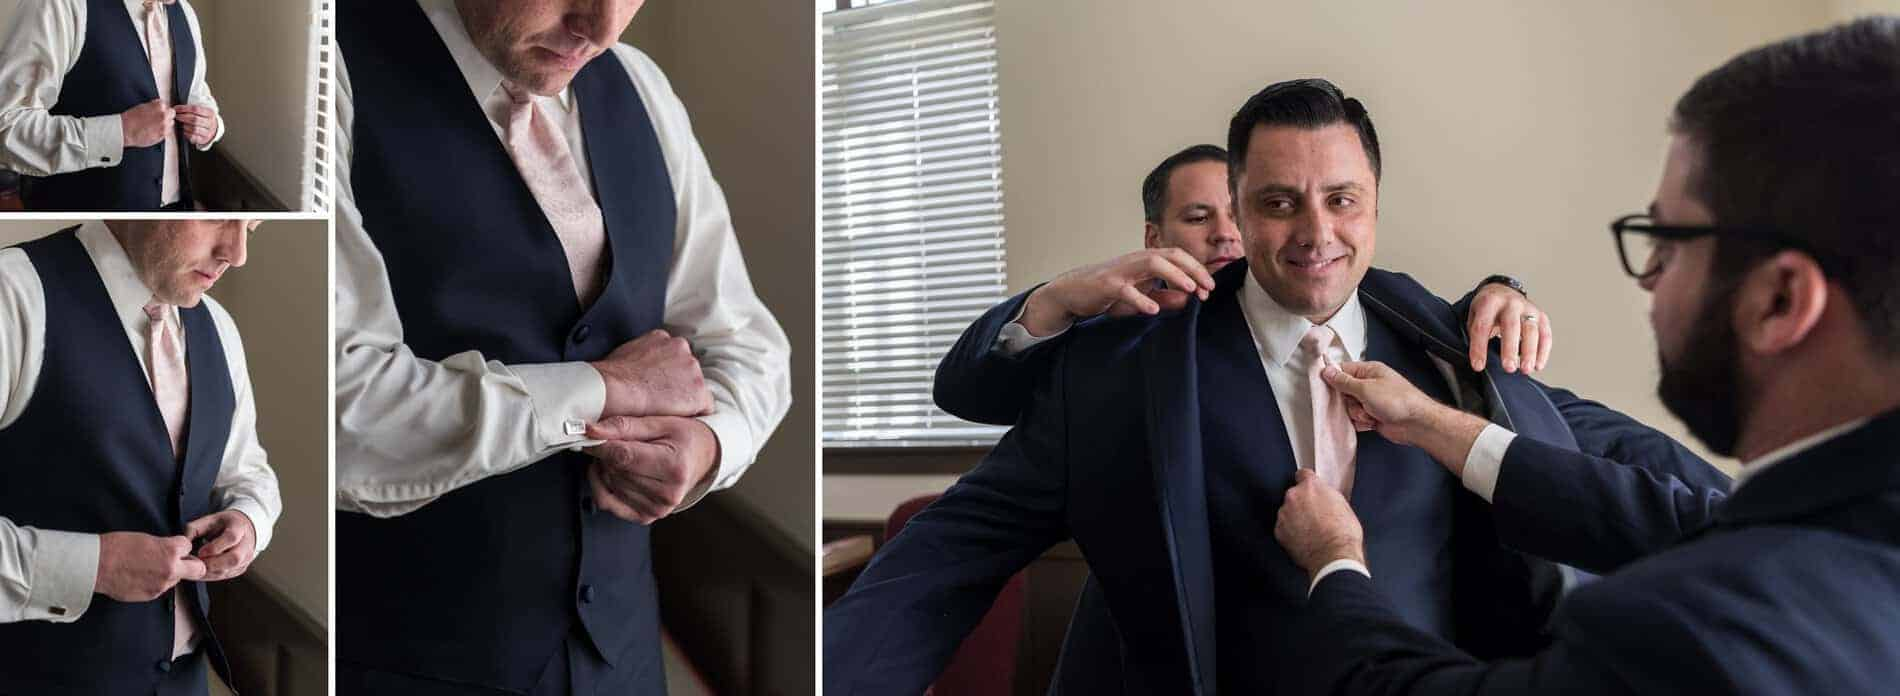 Groom gets ready for his wedding